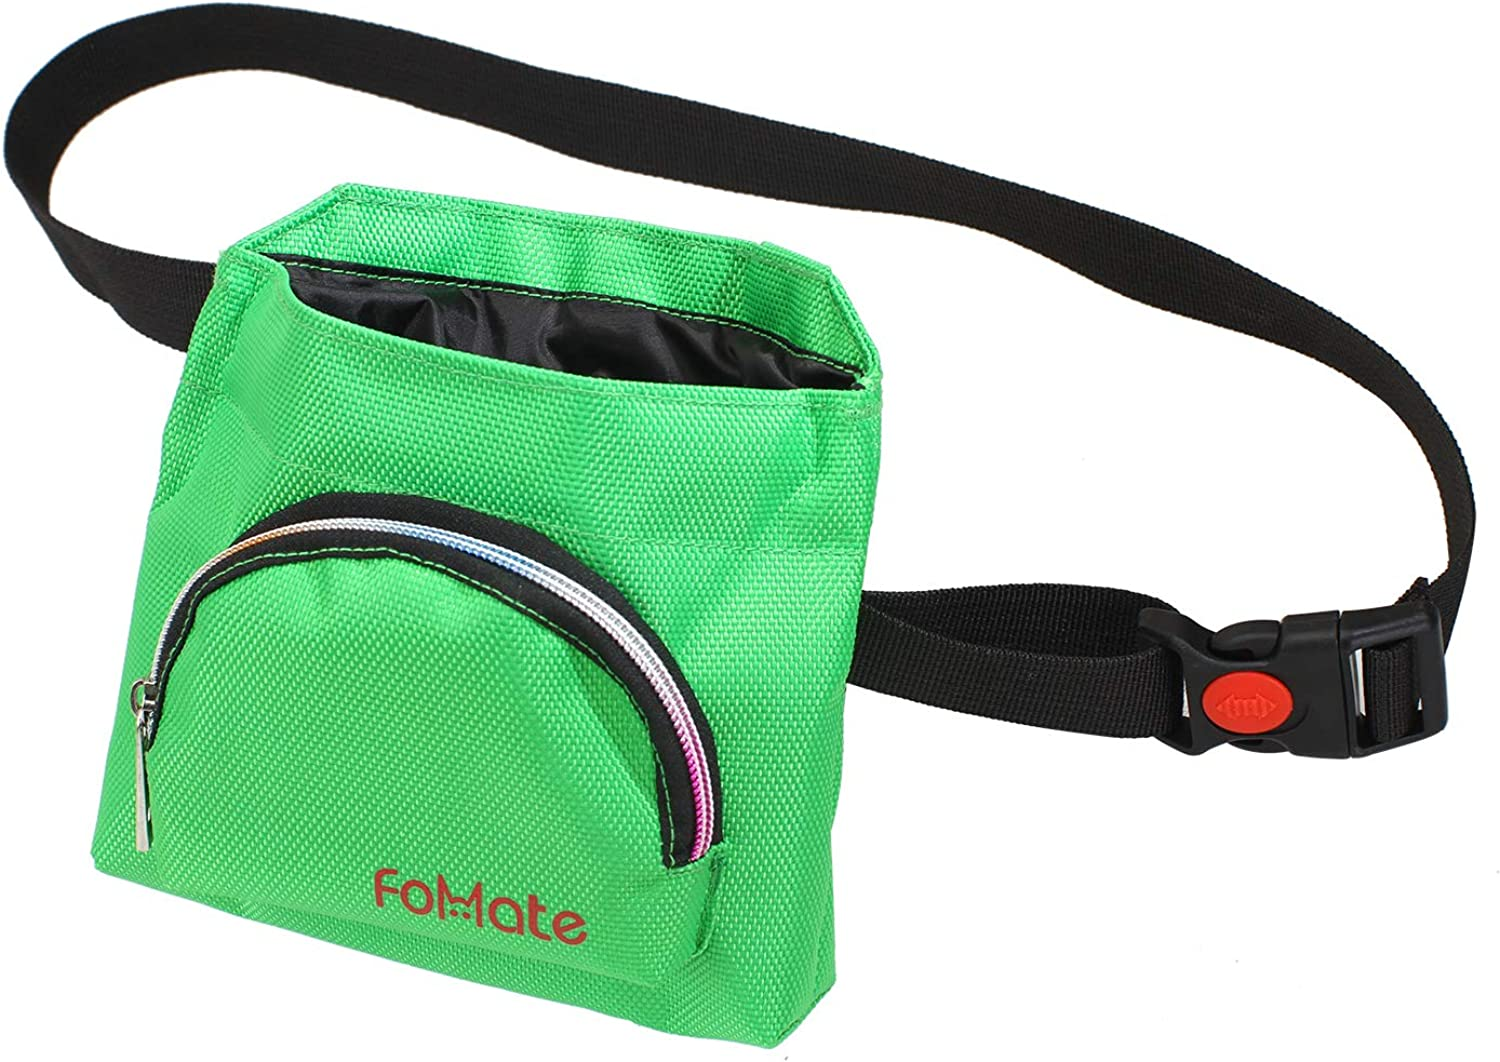 FOMATE Treat Pouch, Convenient Dog Cat Training Accessory (Green)